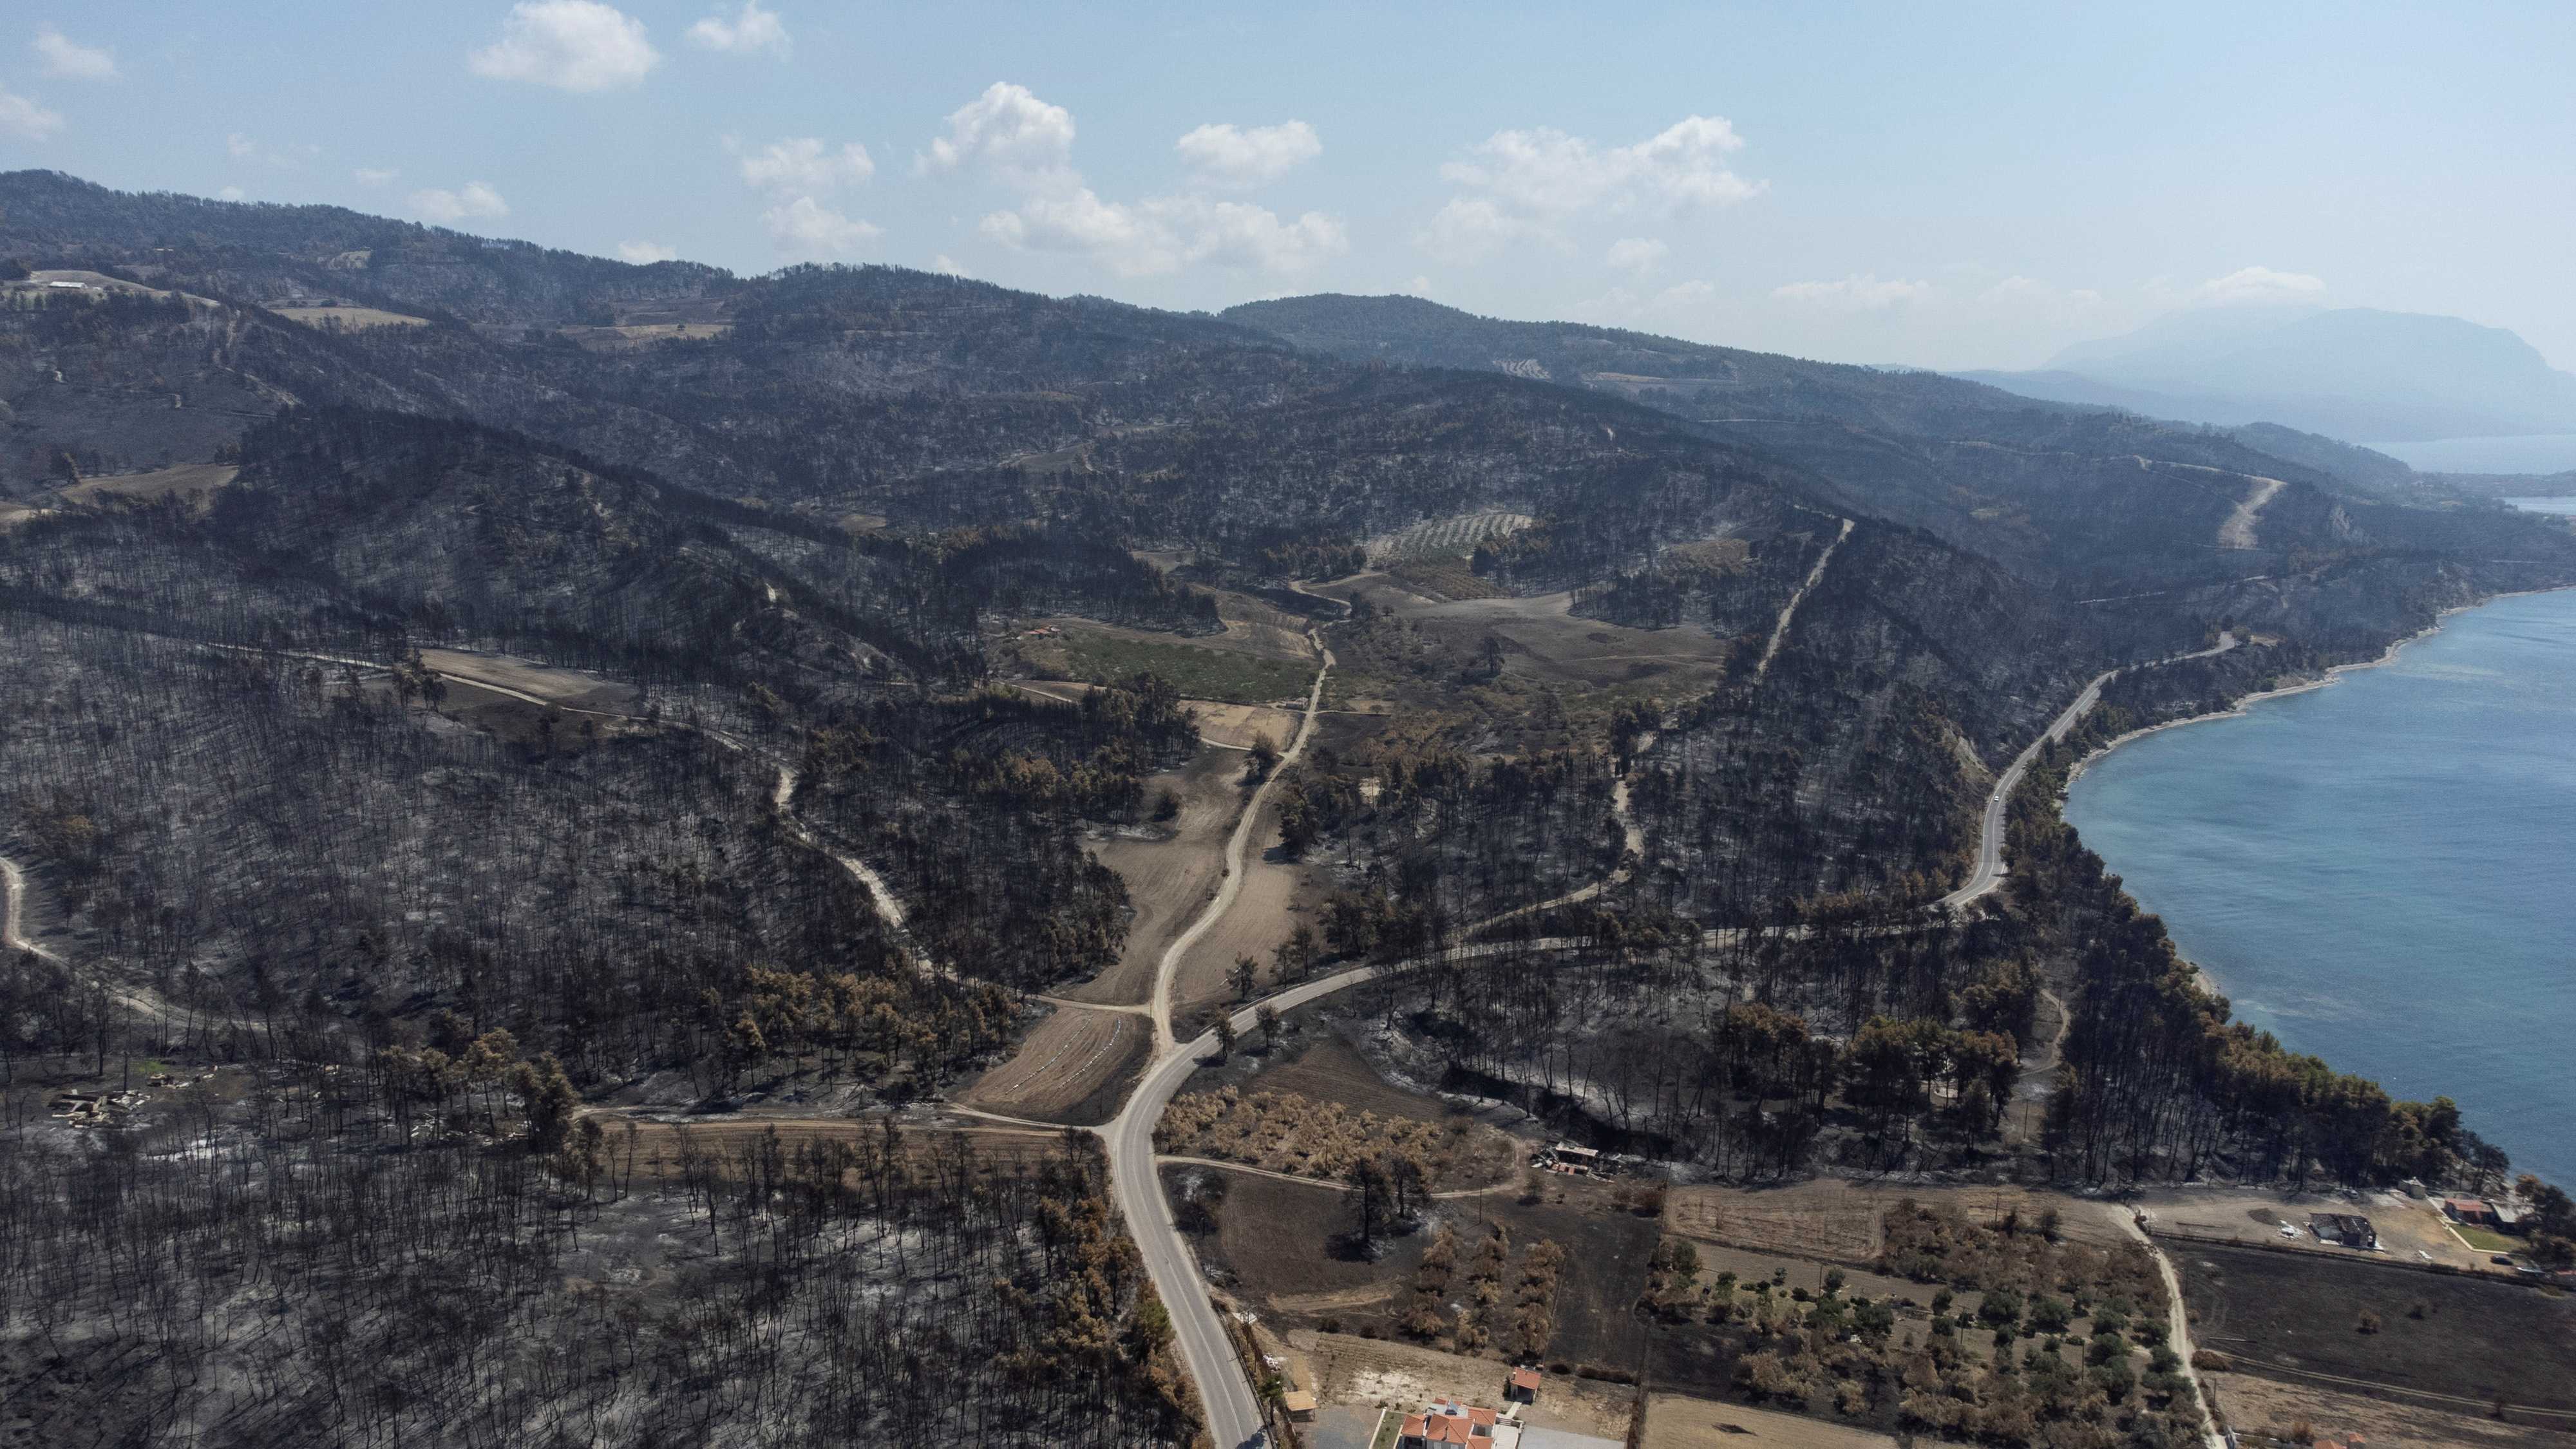 Burnt hillsides are seen following a wildfire near the village of Rovies on the island of Evia, Greece, August 12, 2021. Picture taken with a drone. REUTERS/Alkis Konstantinidis